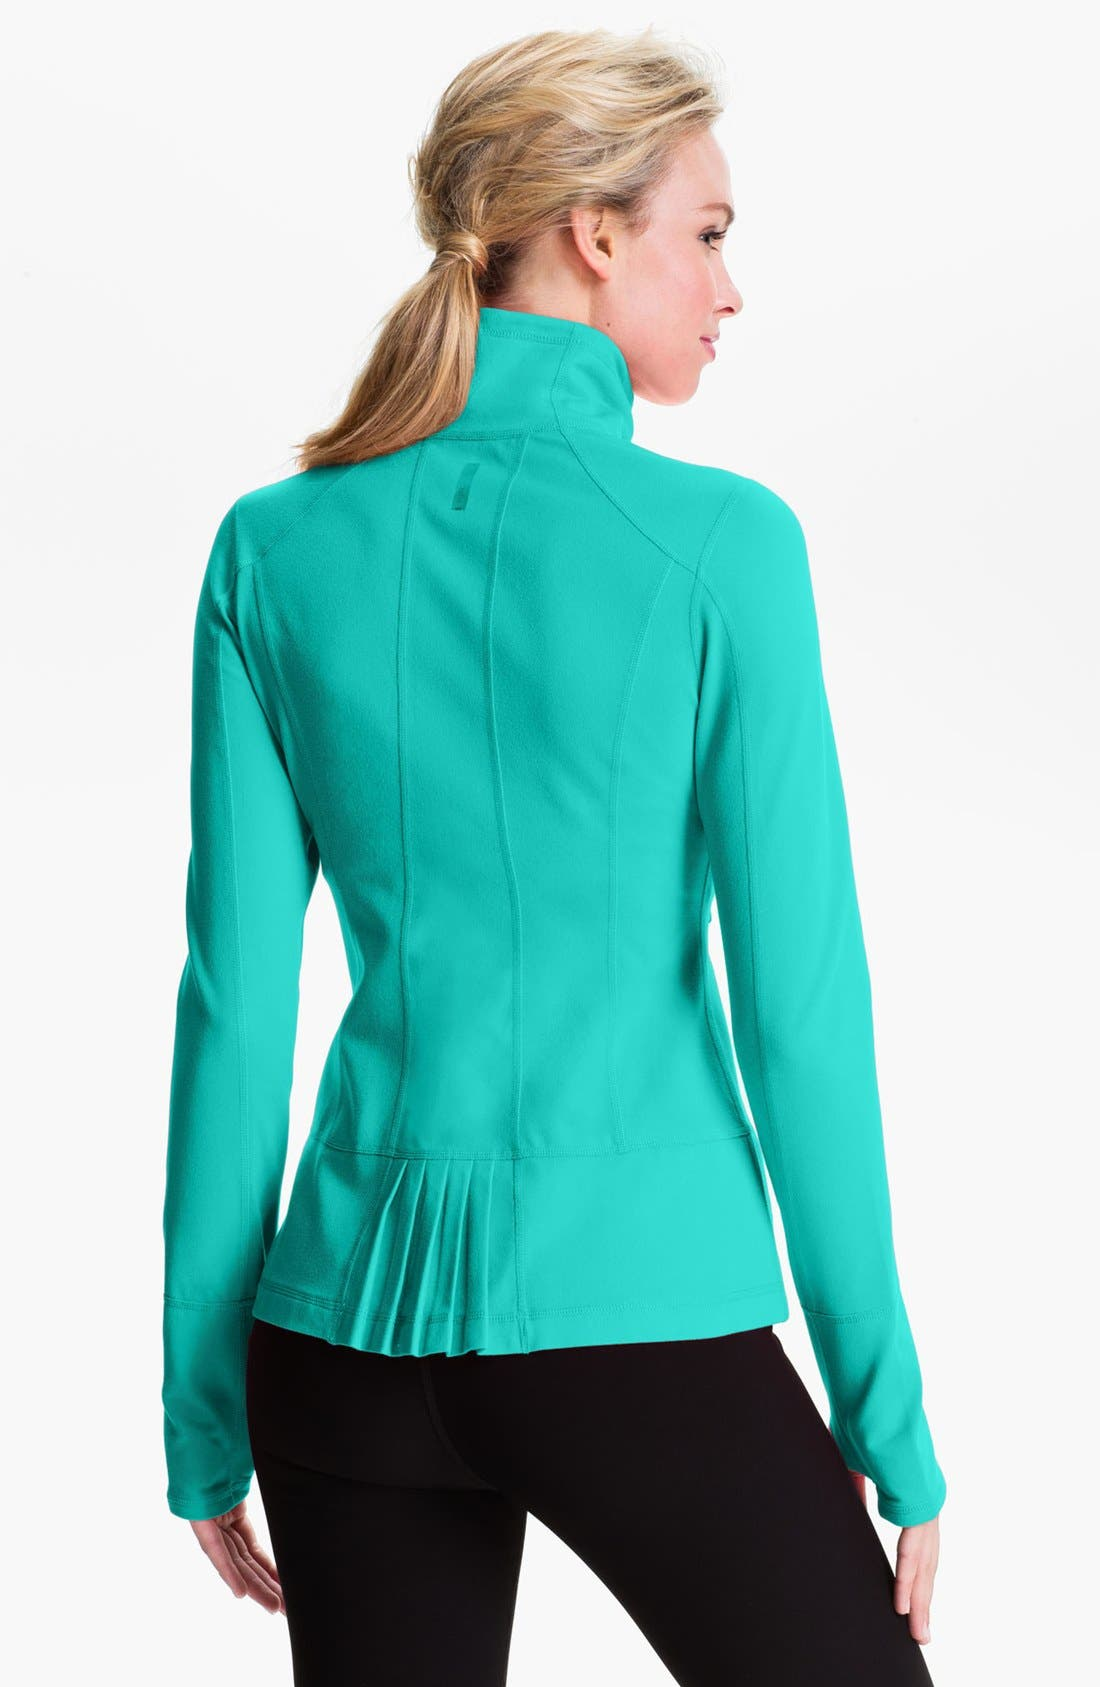 Alternate Image 1 Selected - Zella 'Allison' Back Pleat Jacket